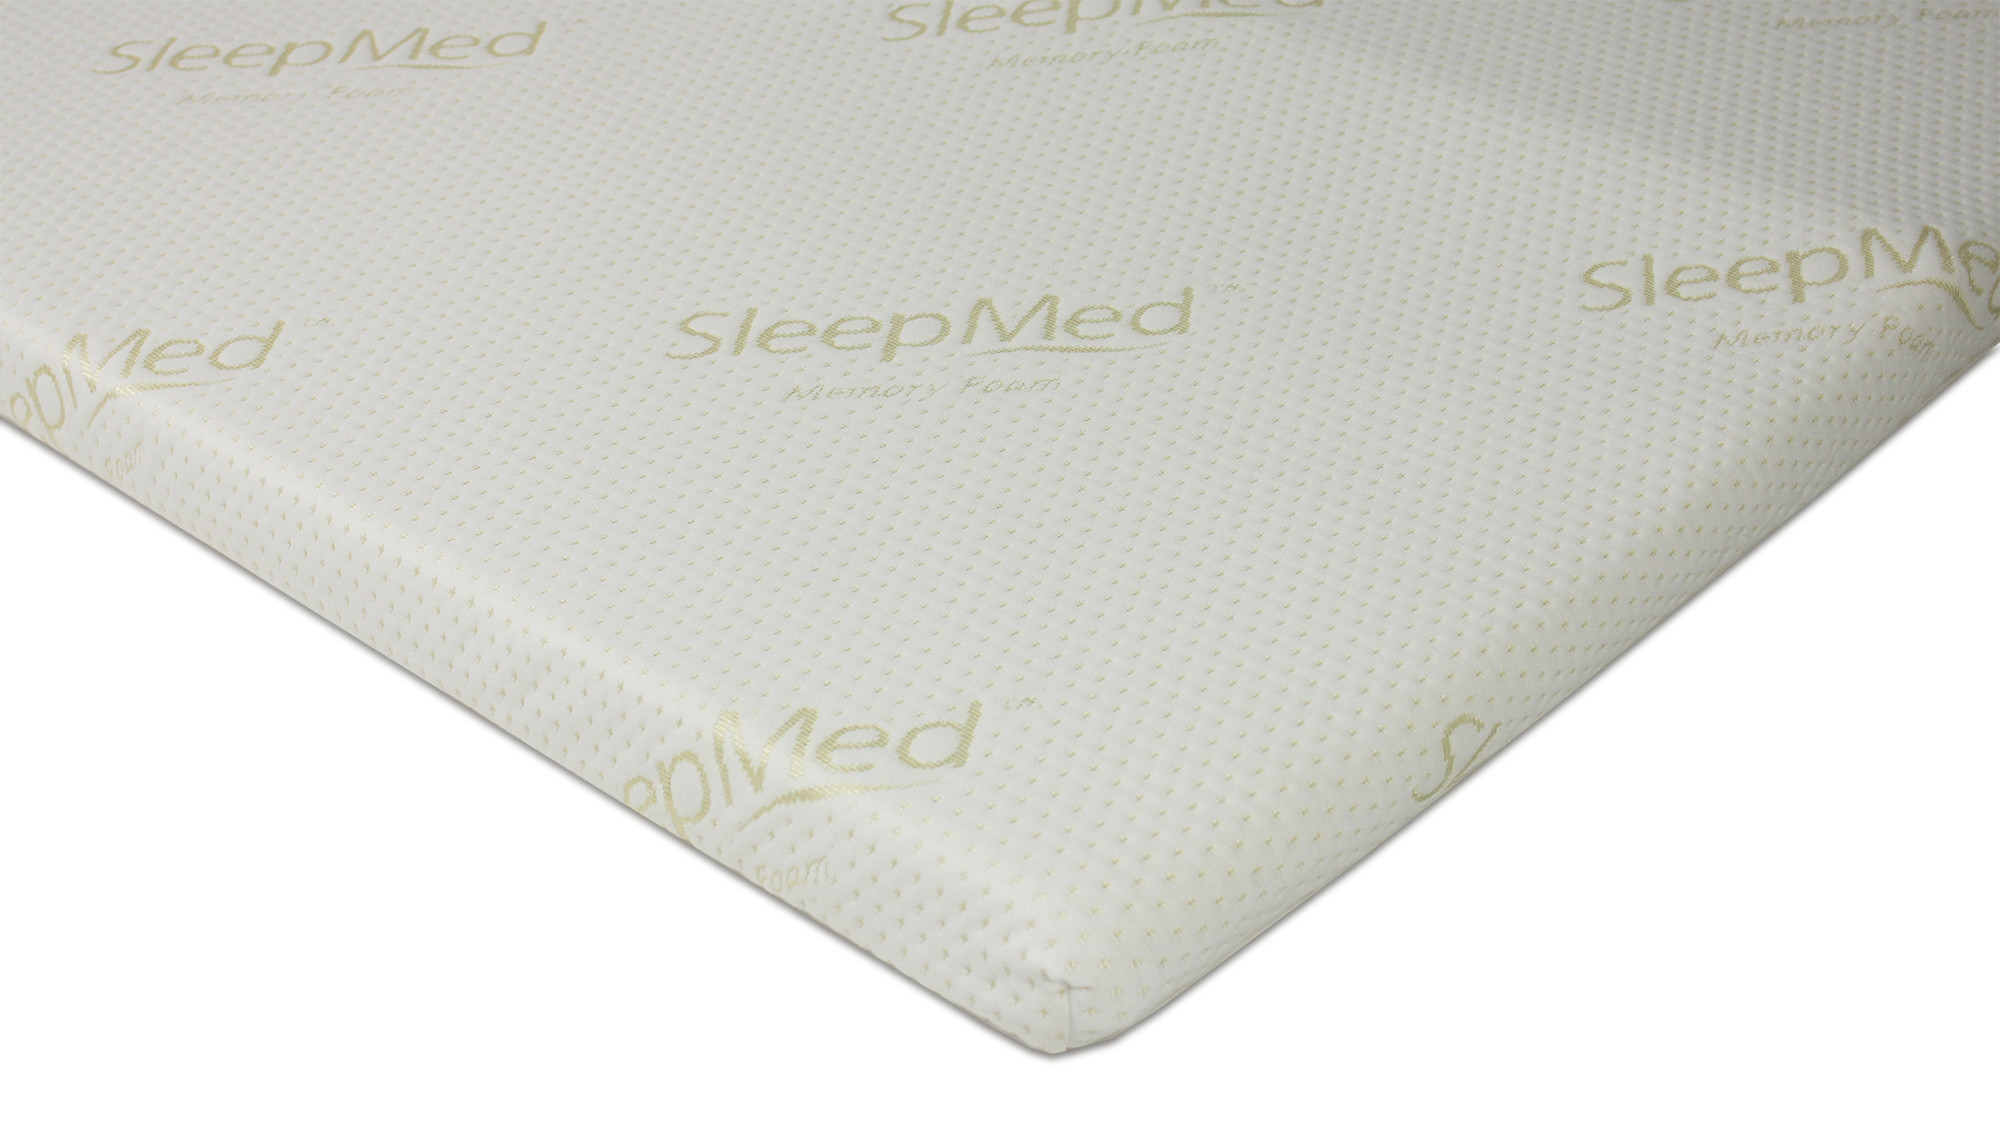 SleepMed Memory Foam Topper (Queen Size)